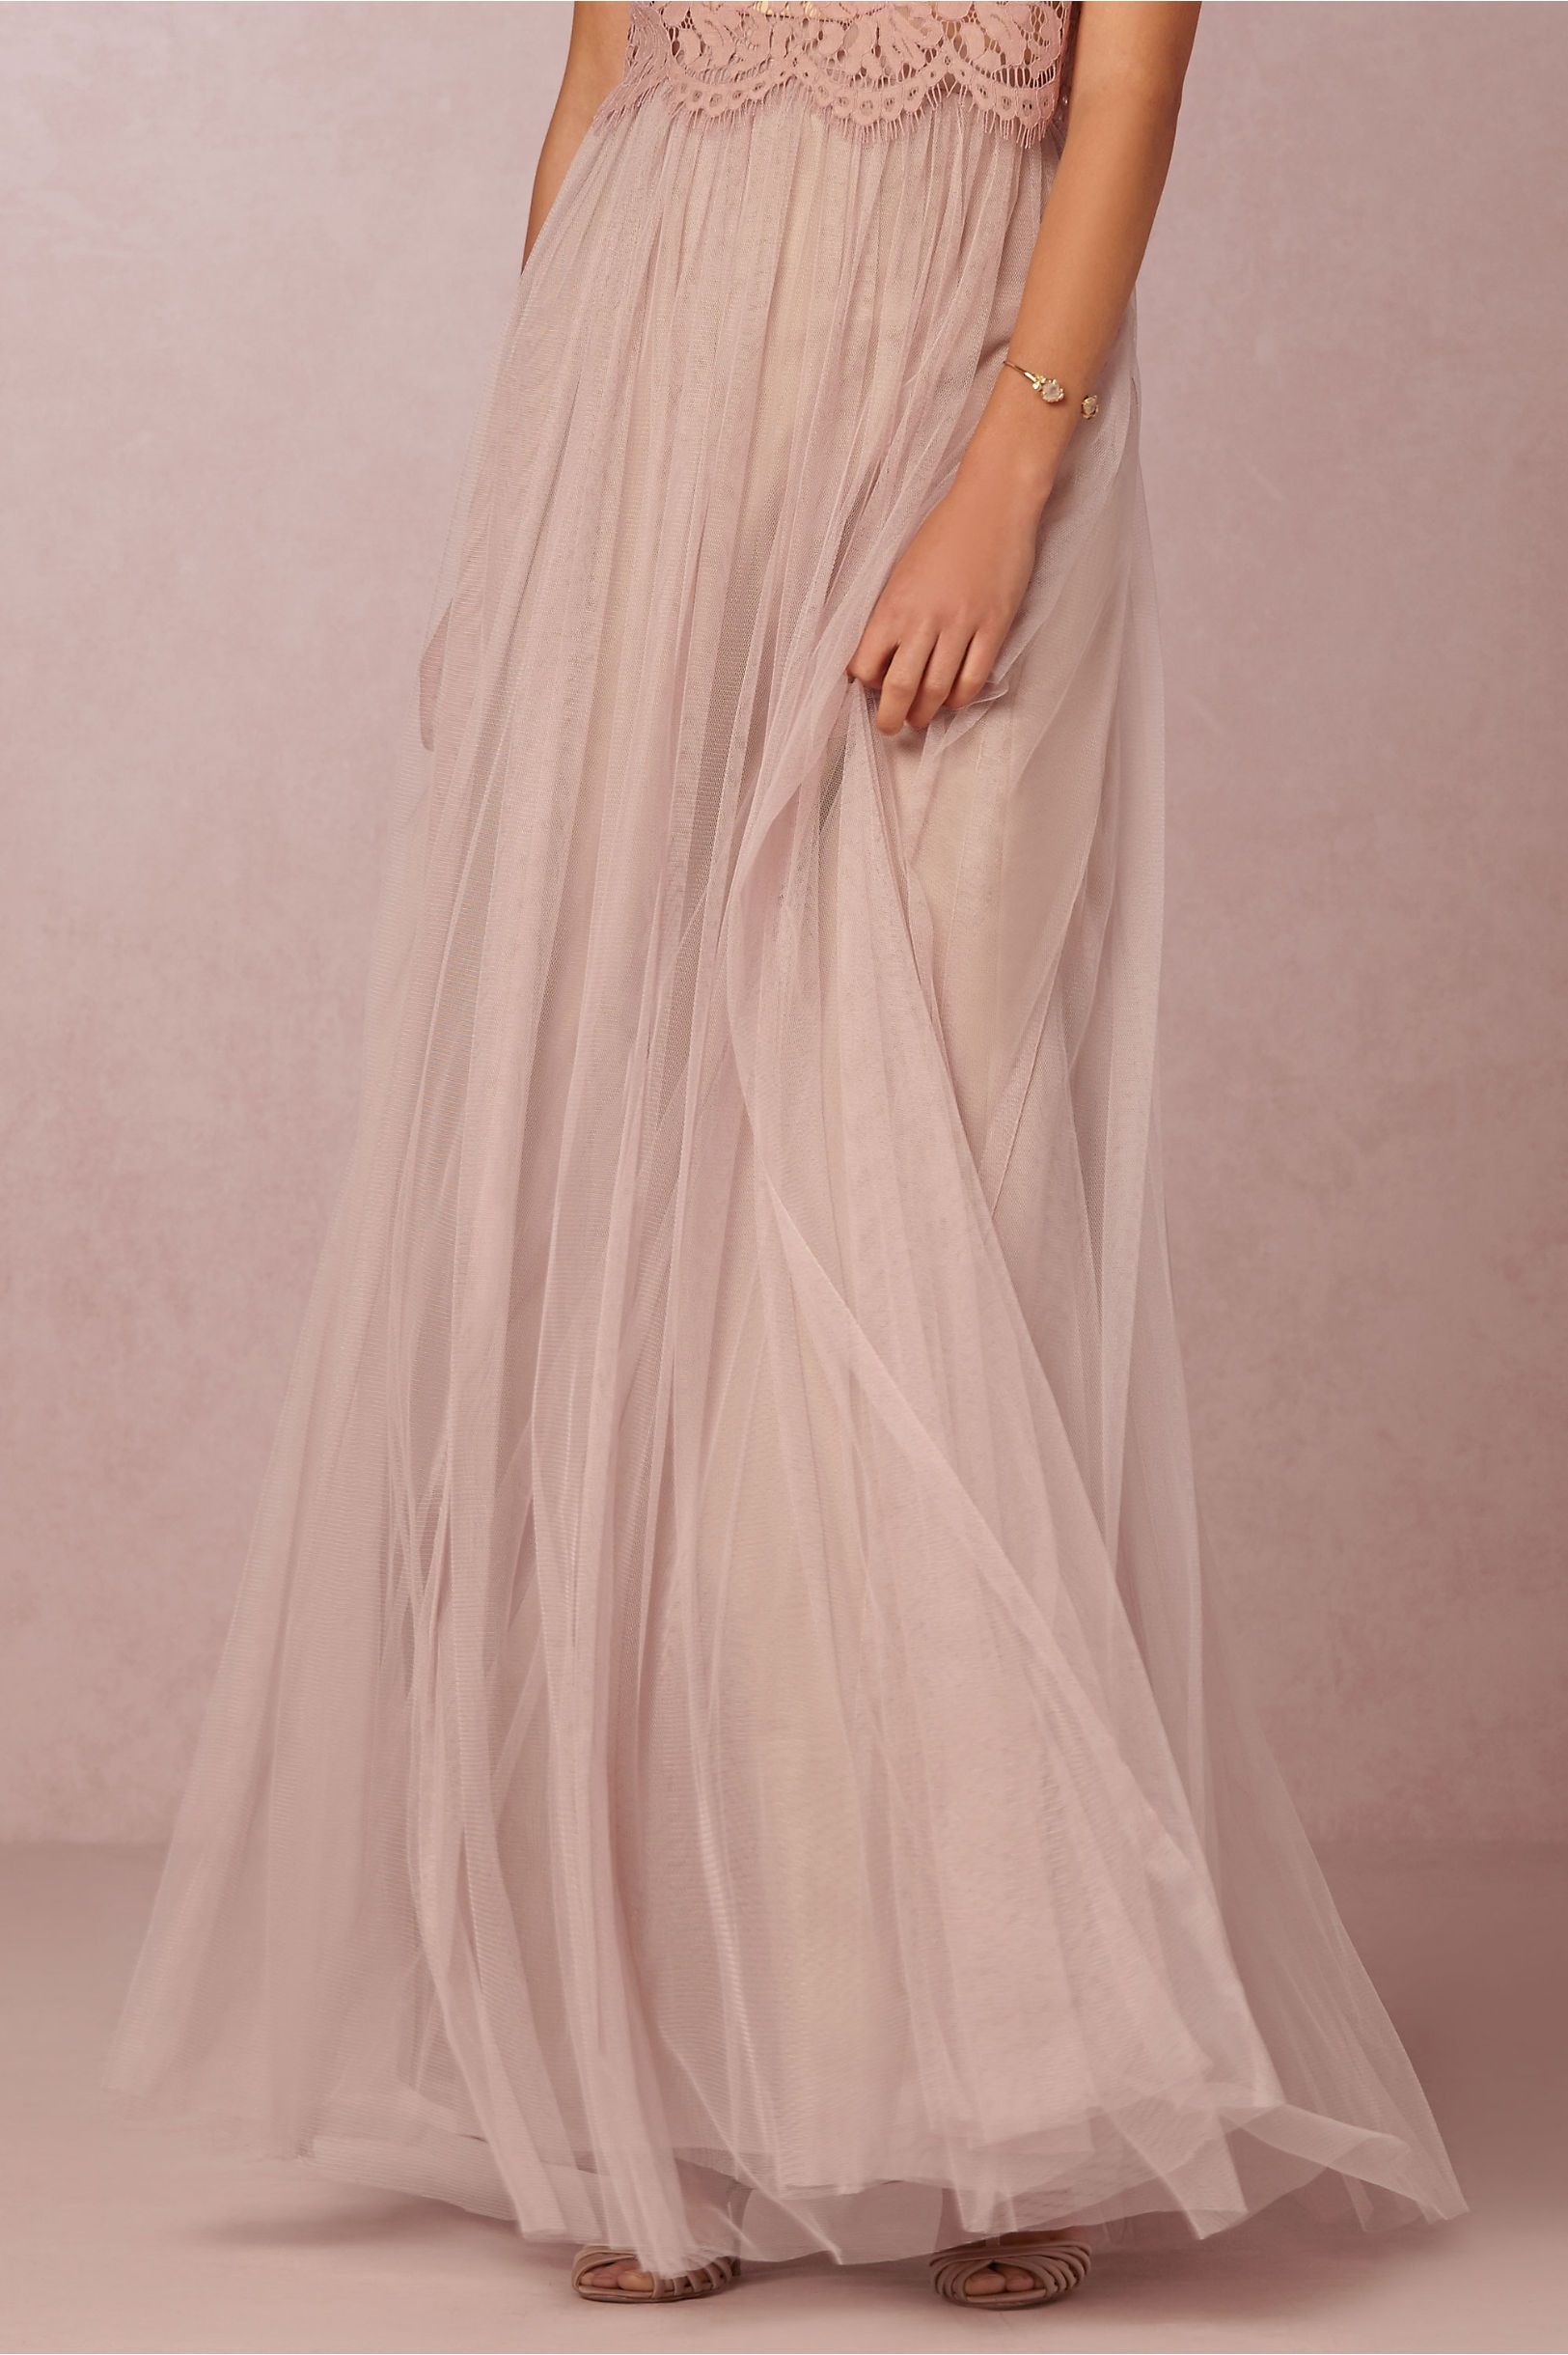 Cleo Top and Louise Skirt in Bridesmaids Bridesmaid Dresses at BHLDN ...